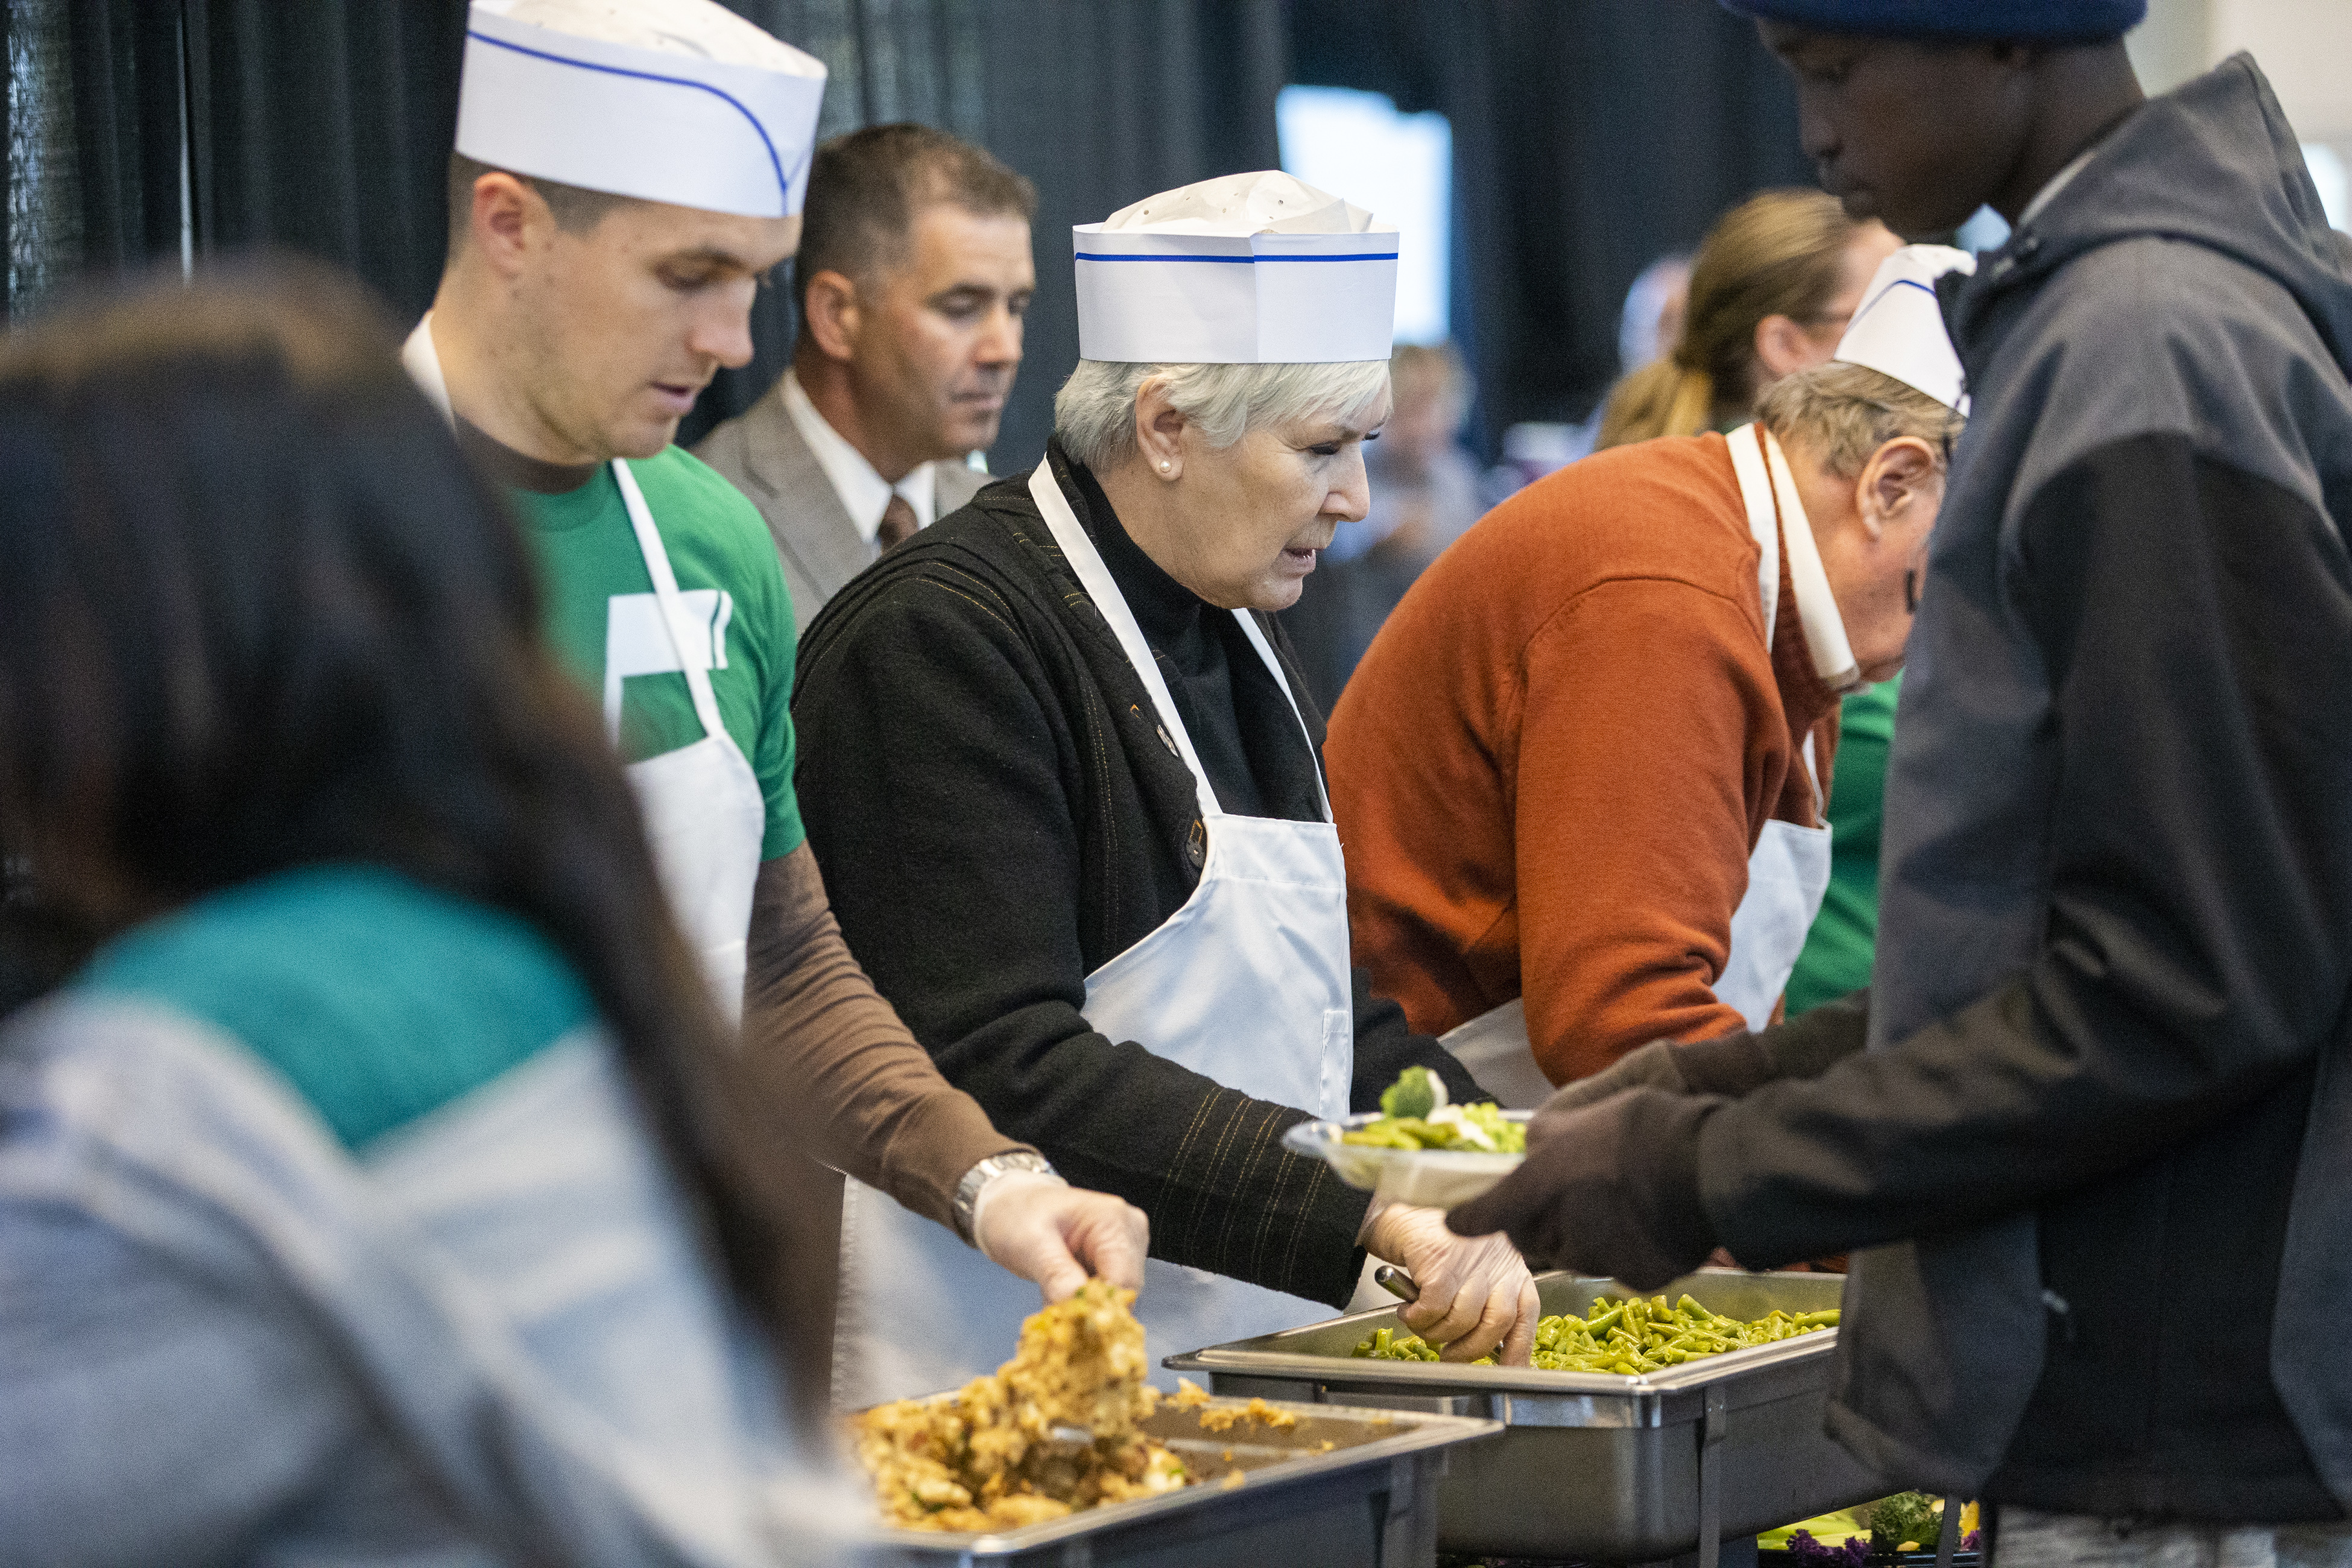 Jazz owner Gail Miller dishes up food during the 20th annual We Care — We Share Thanksgiving Meal for local homeless and low-income individuals at the Vivint Smart Home Arena in Salt Lake City on Monday, Nov. 19, 2018. Miller is one of six car dealers from around the world to be honored for exceptional community service as part of Ford Motor Co.'s Salute to Dealers awards.